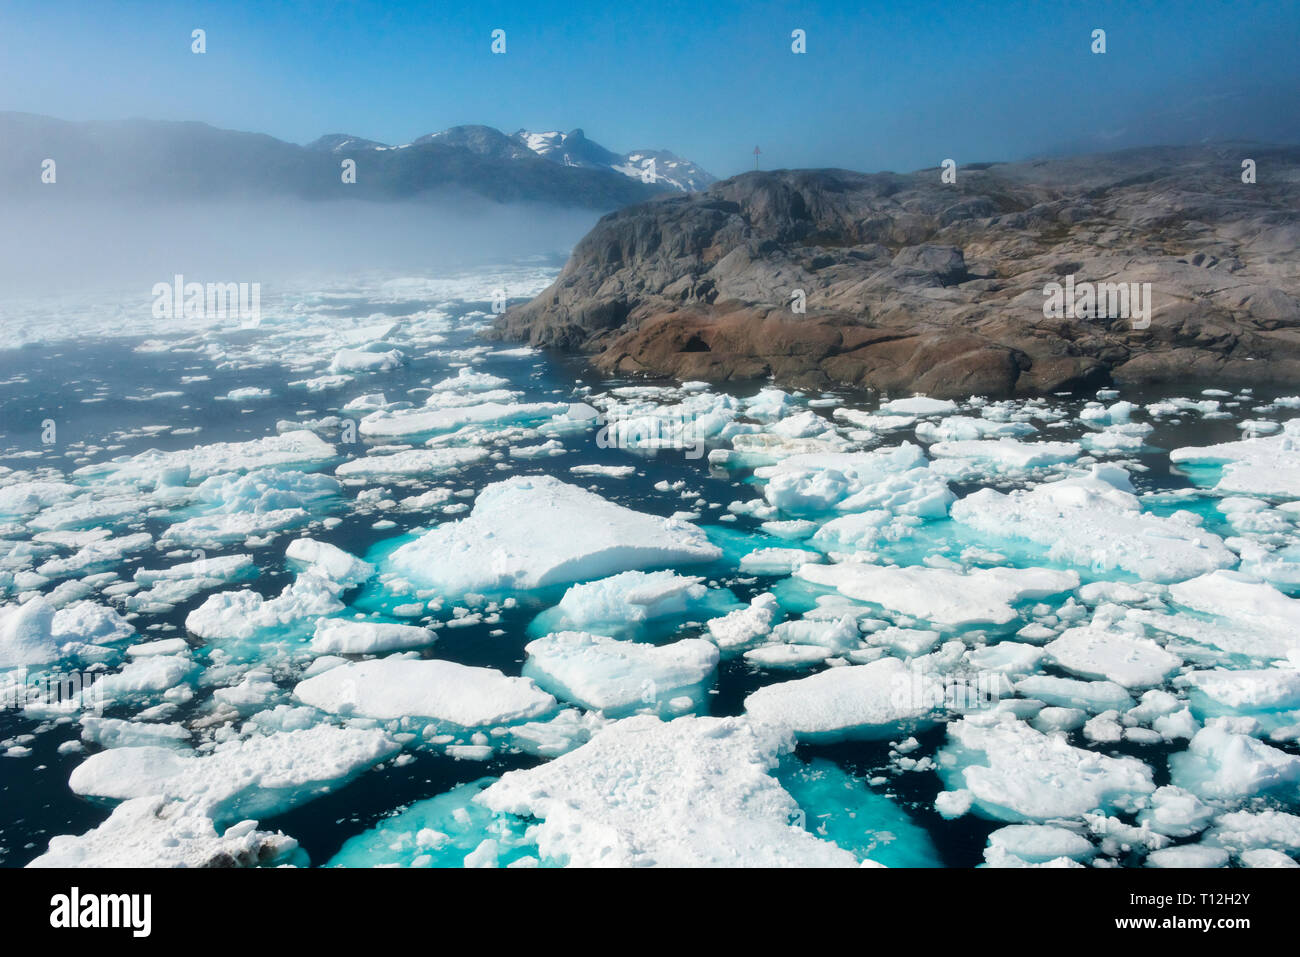 Floating ice on the ocean and island in Prins Christian Sund, Greenland - Stock Image